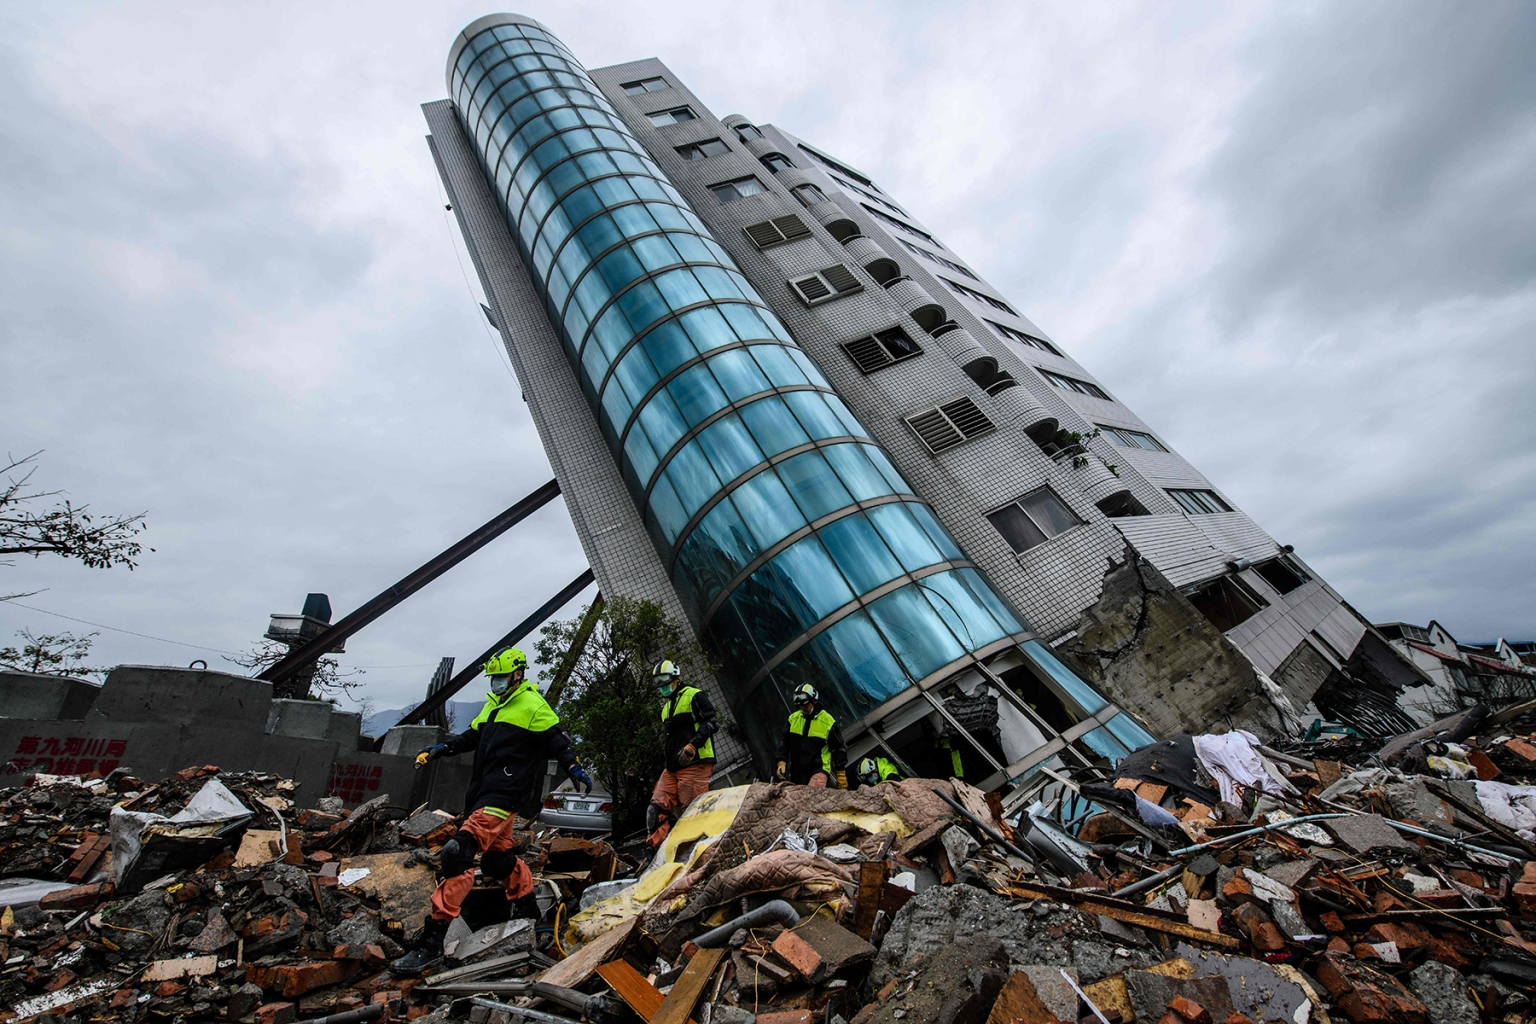 Rescue workers walk out from the Yun Tsui building, which leans at a precarious angle, in the Taiwanese city of Hualien on Feb. 8 after the city was hit by a 6.4-magnitude quake on Feb. 6. ANTHONY WALLACE/AFP/Getty Images